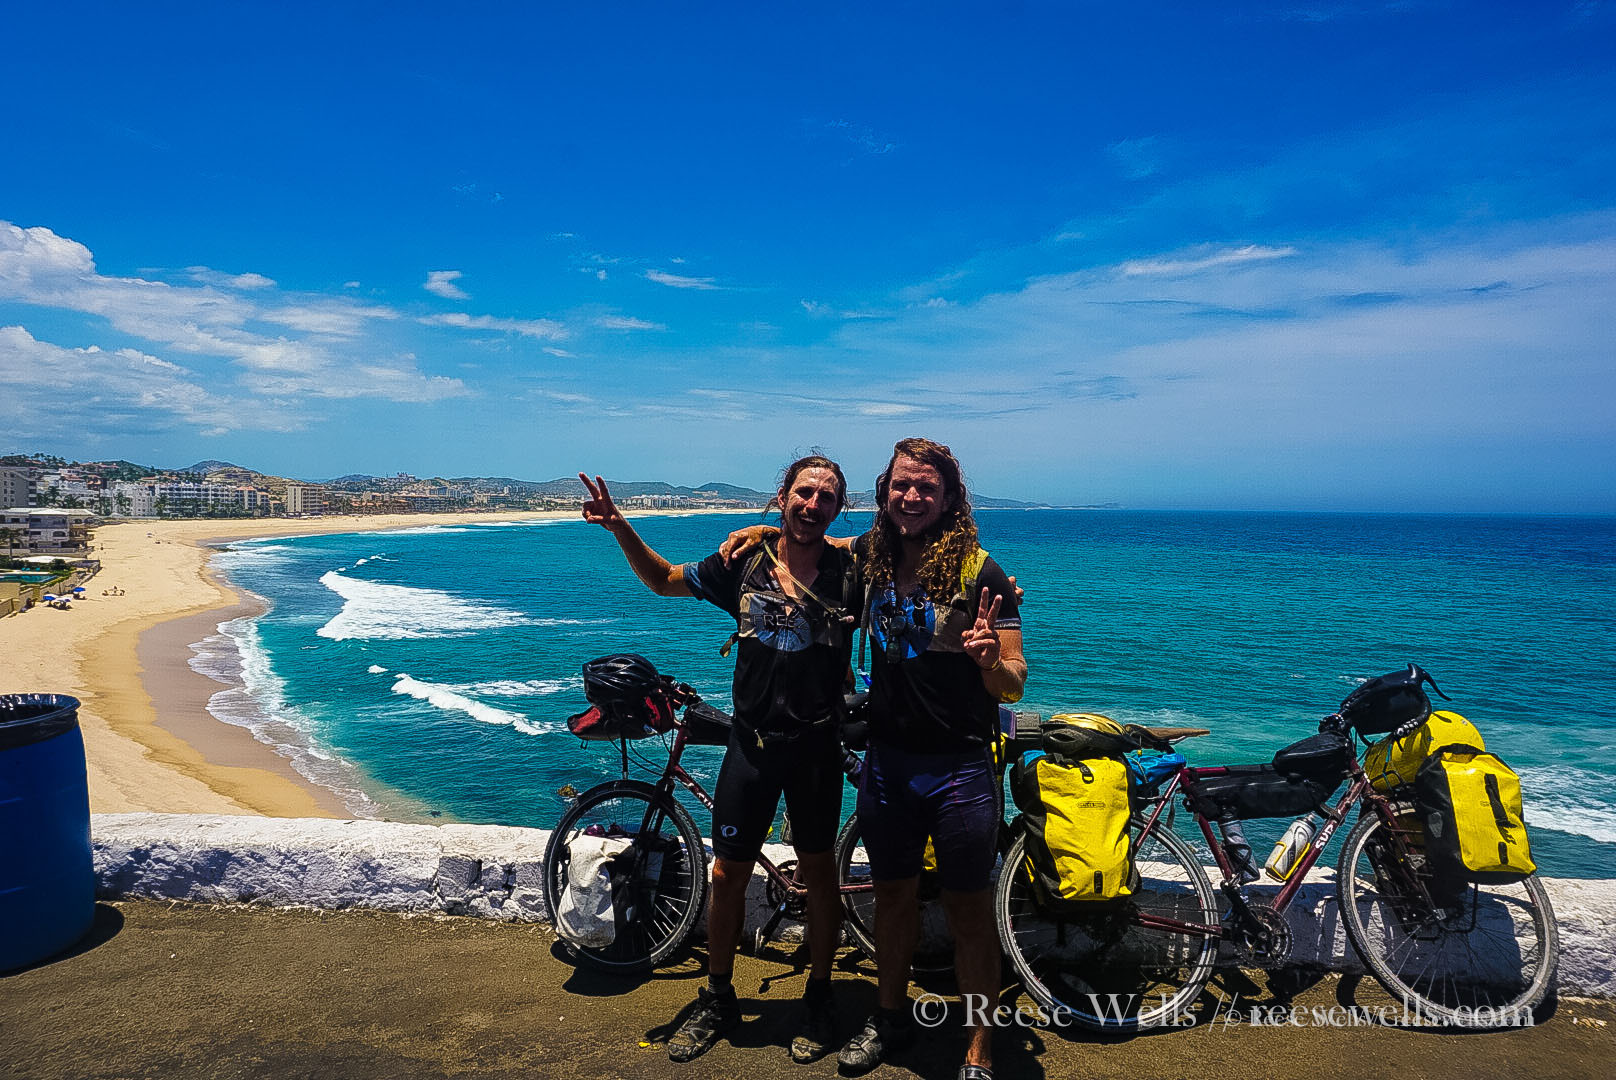 Arrival in San Jose del Cabo. The end of another tour. 15,000 miles together on the bike and still smiling.